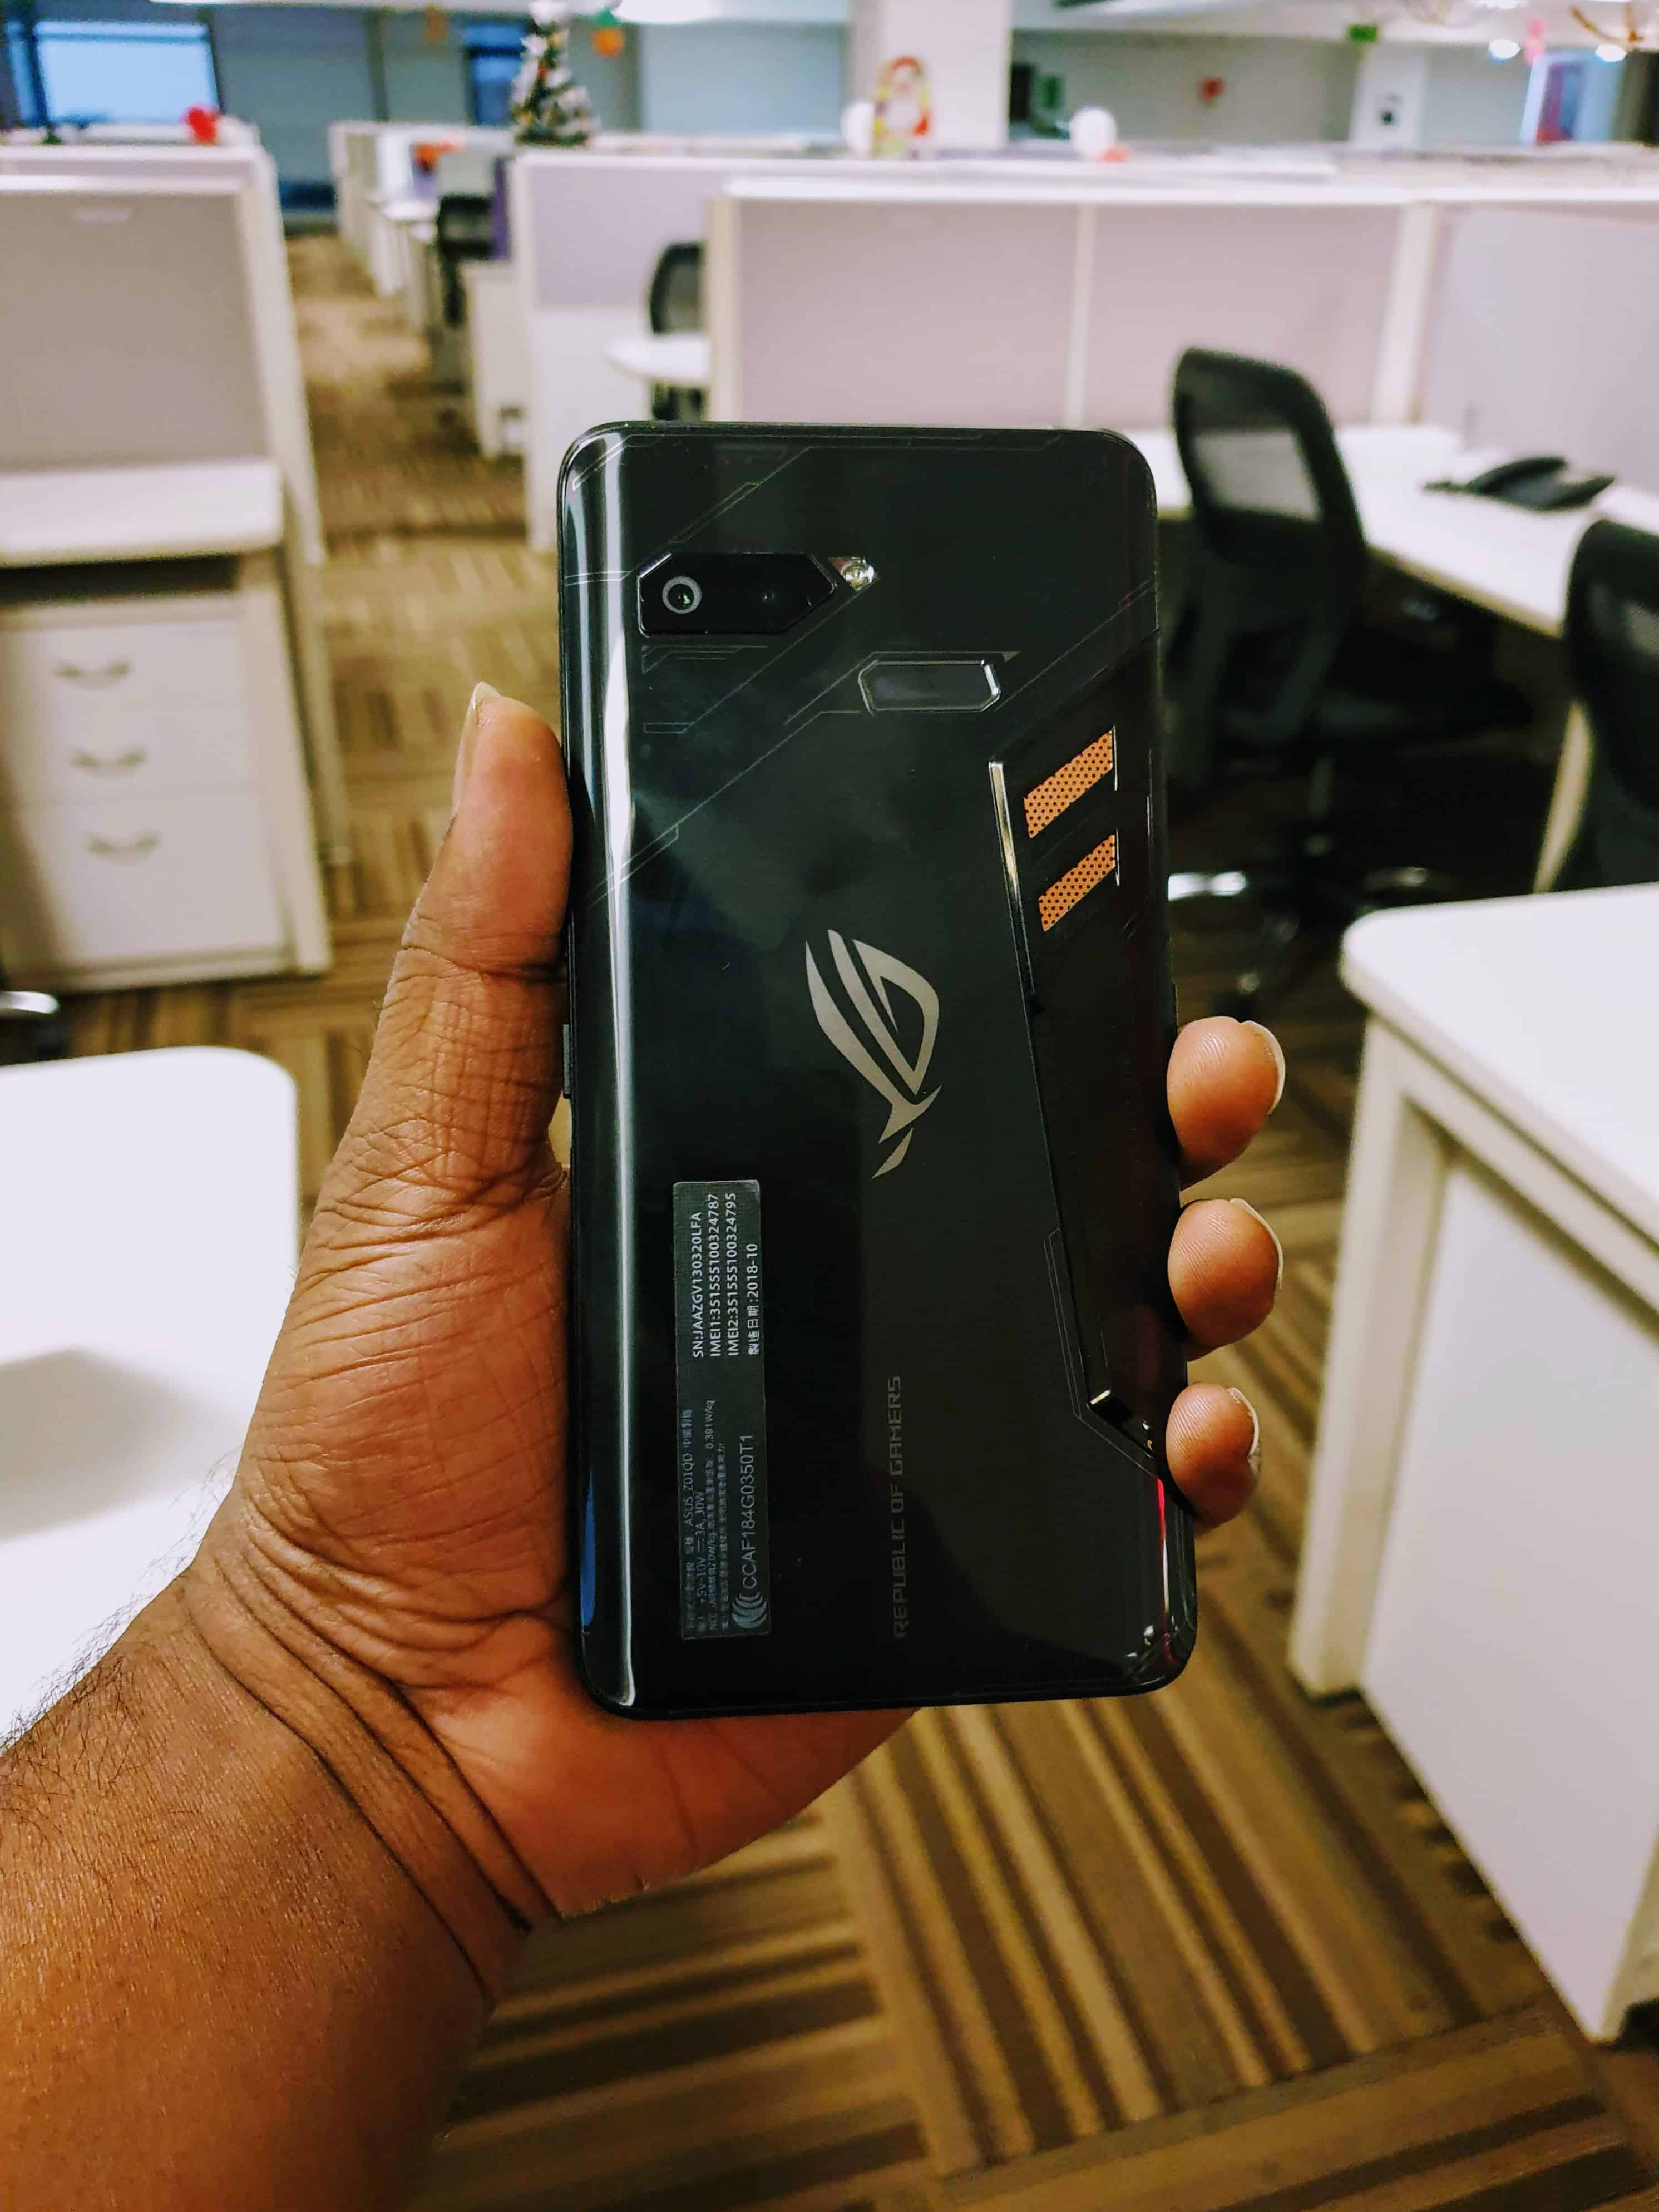 Asus ROG Phone Review - Should You Buy it? - 2